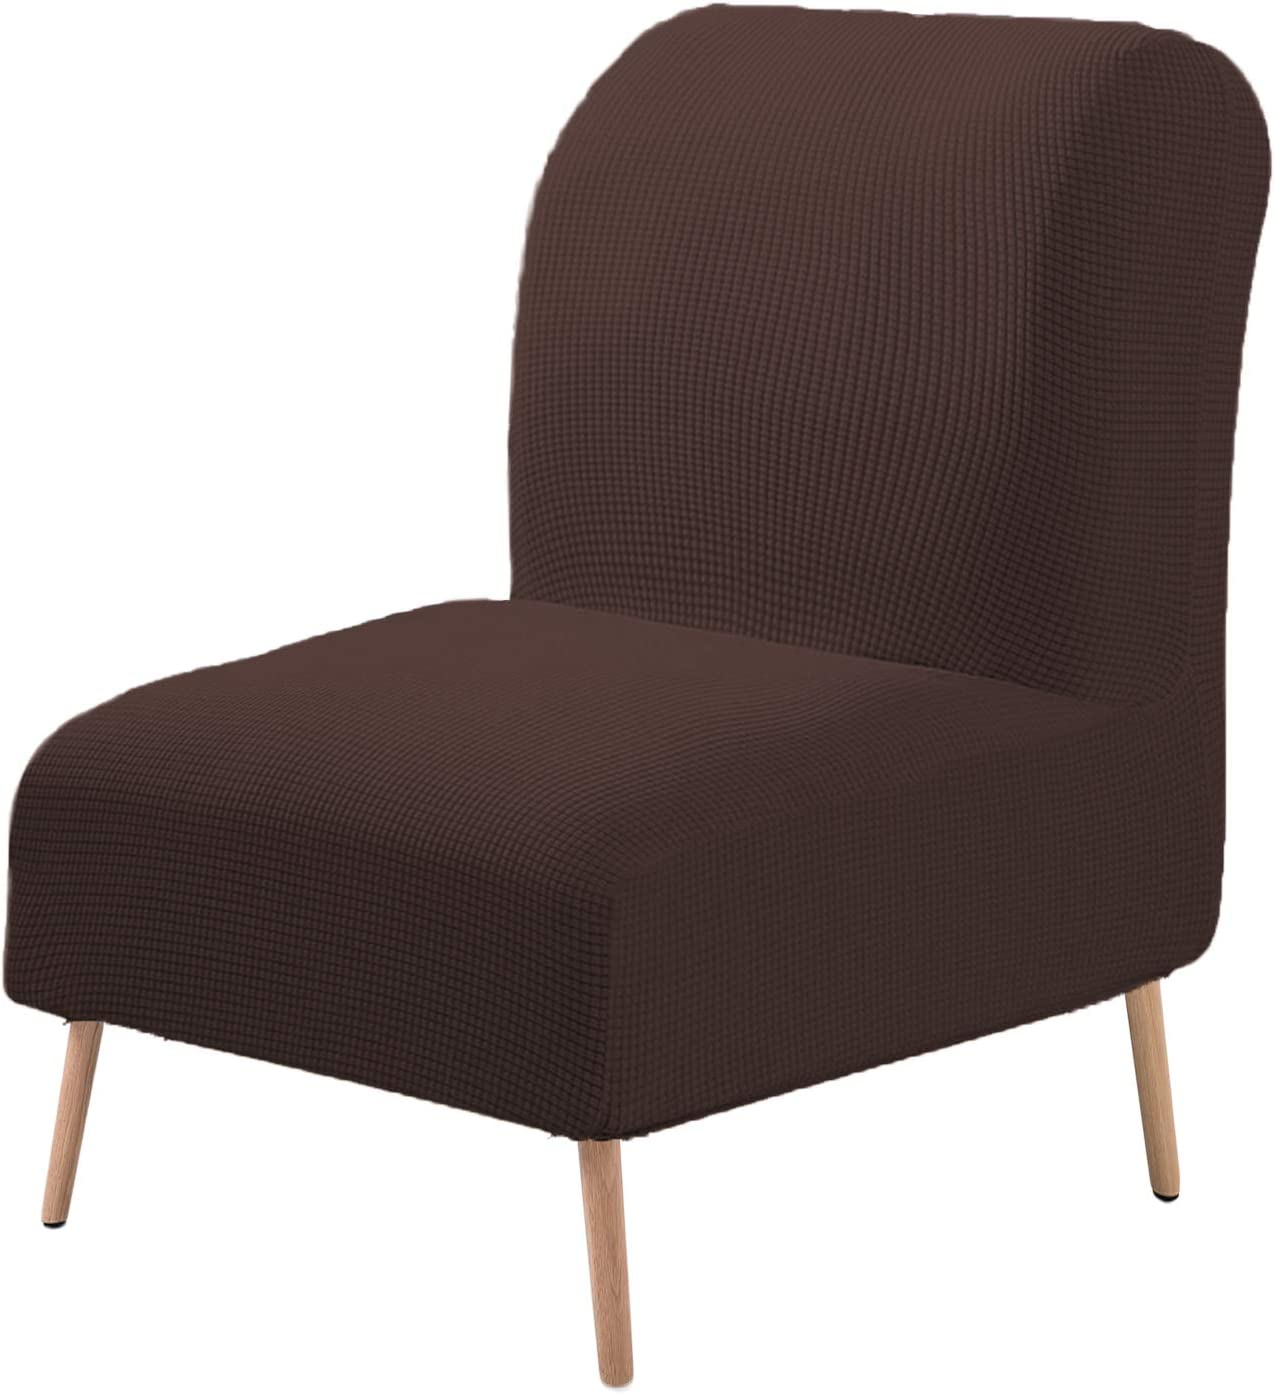 V-TIMMIX Armless Accent Chair Cover Slipcover Stretch Jacquard Furniture Protector,Armless Chairs Modern Furniture Protector Removable Washable for Home Hotel(Chocolate)